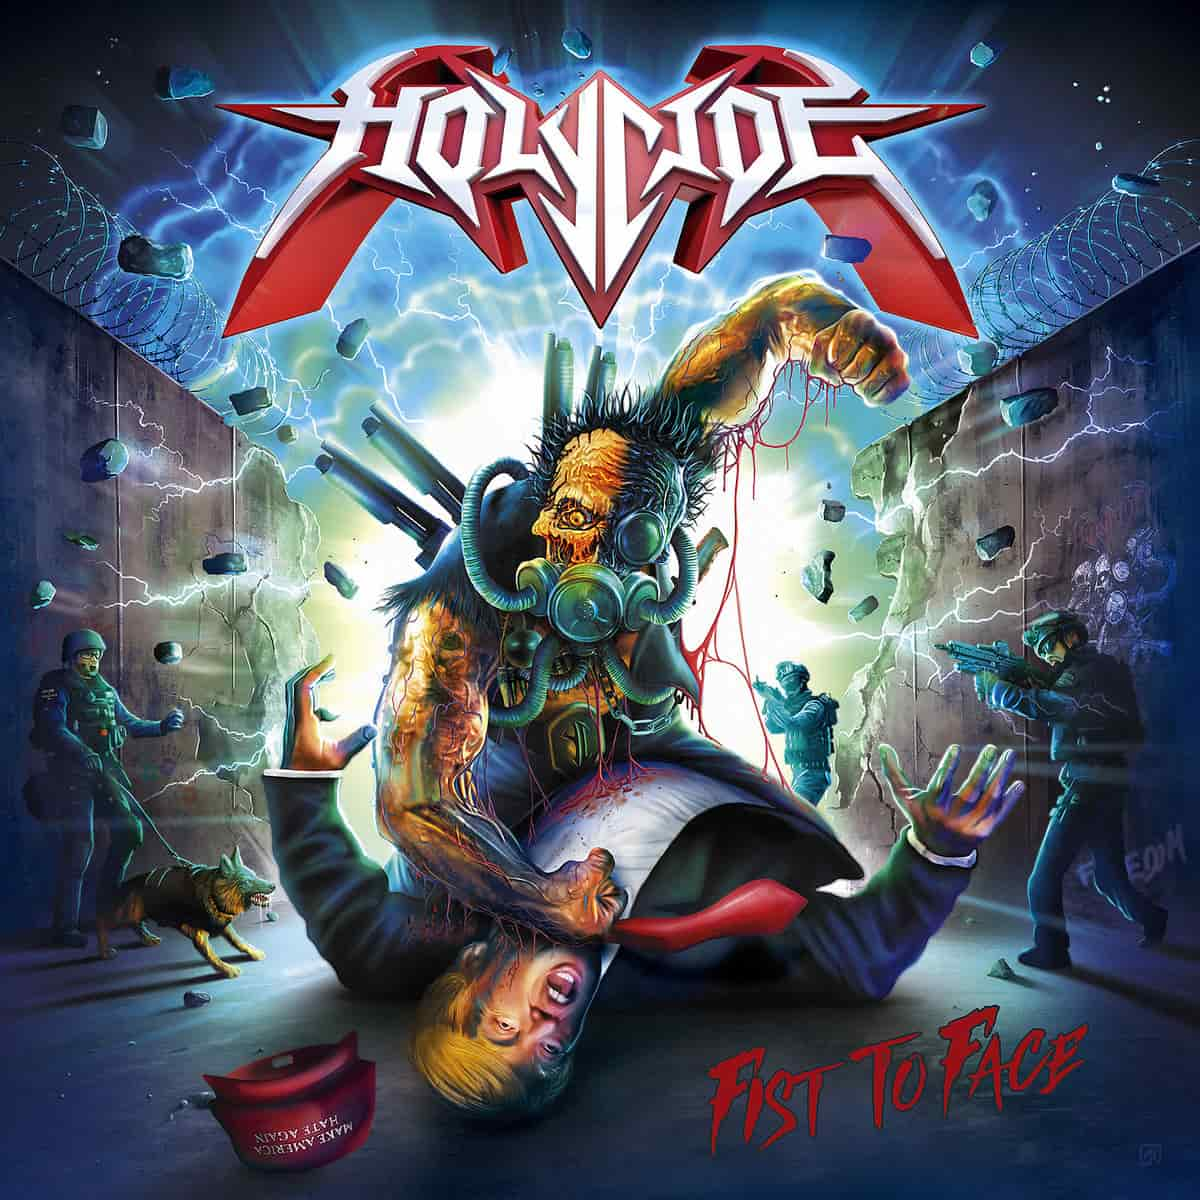 Review of the Album Fist to Face by Spanish Thrash Metal Band Holycide